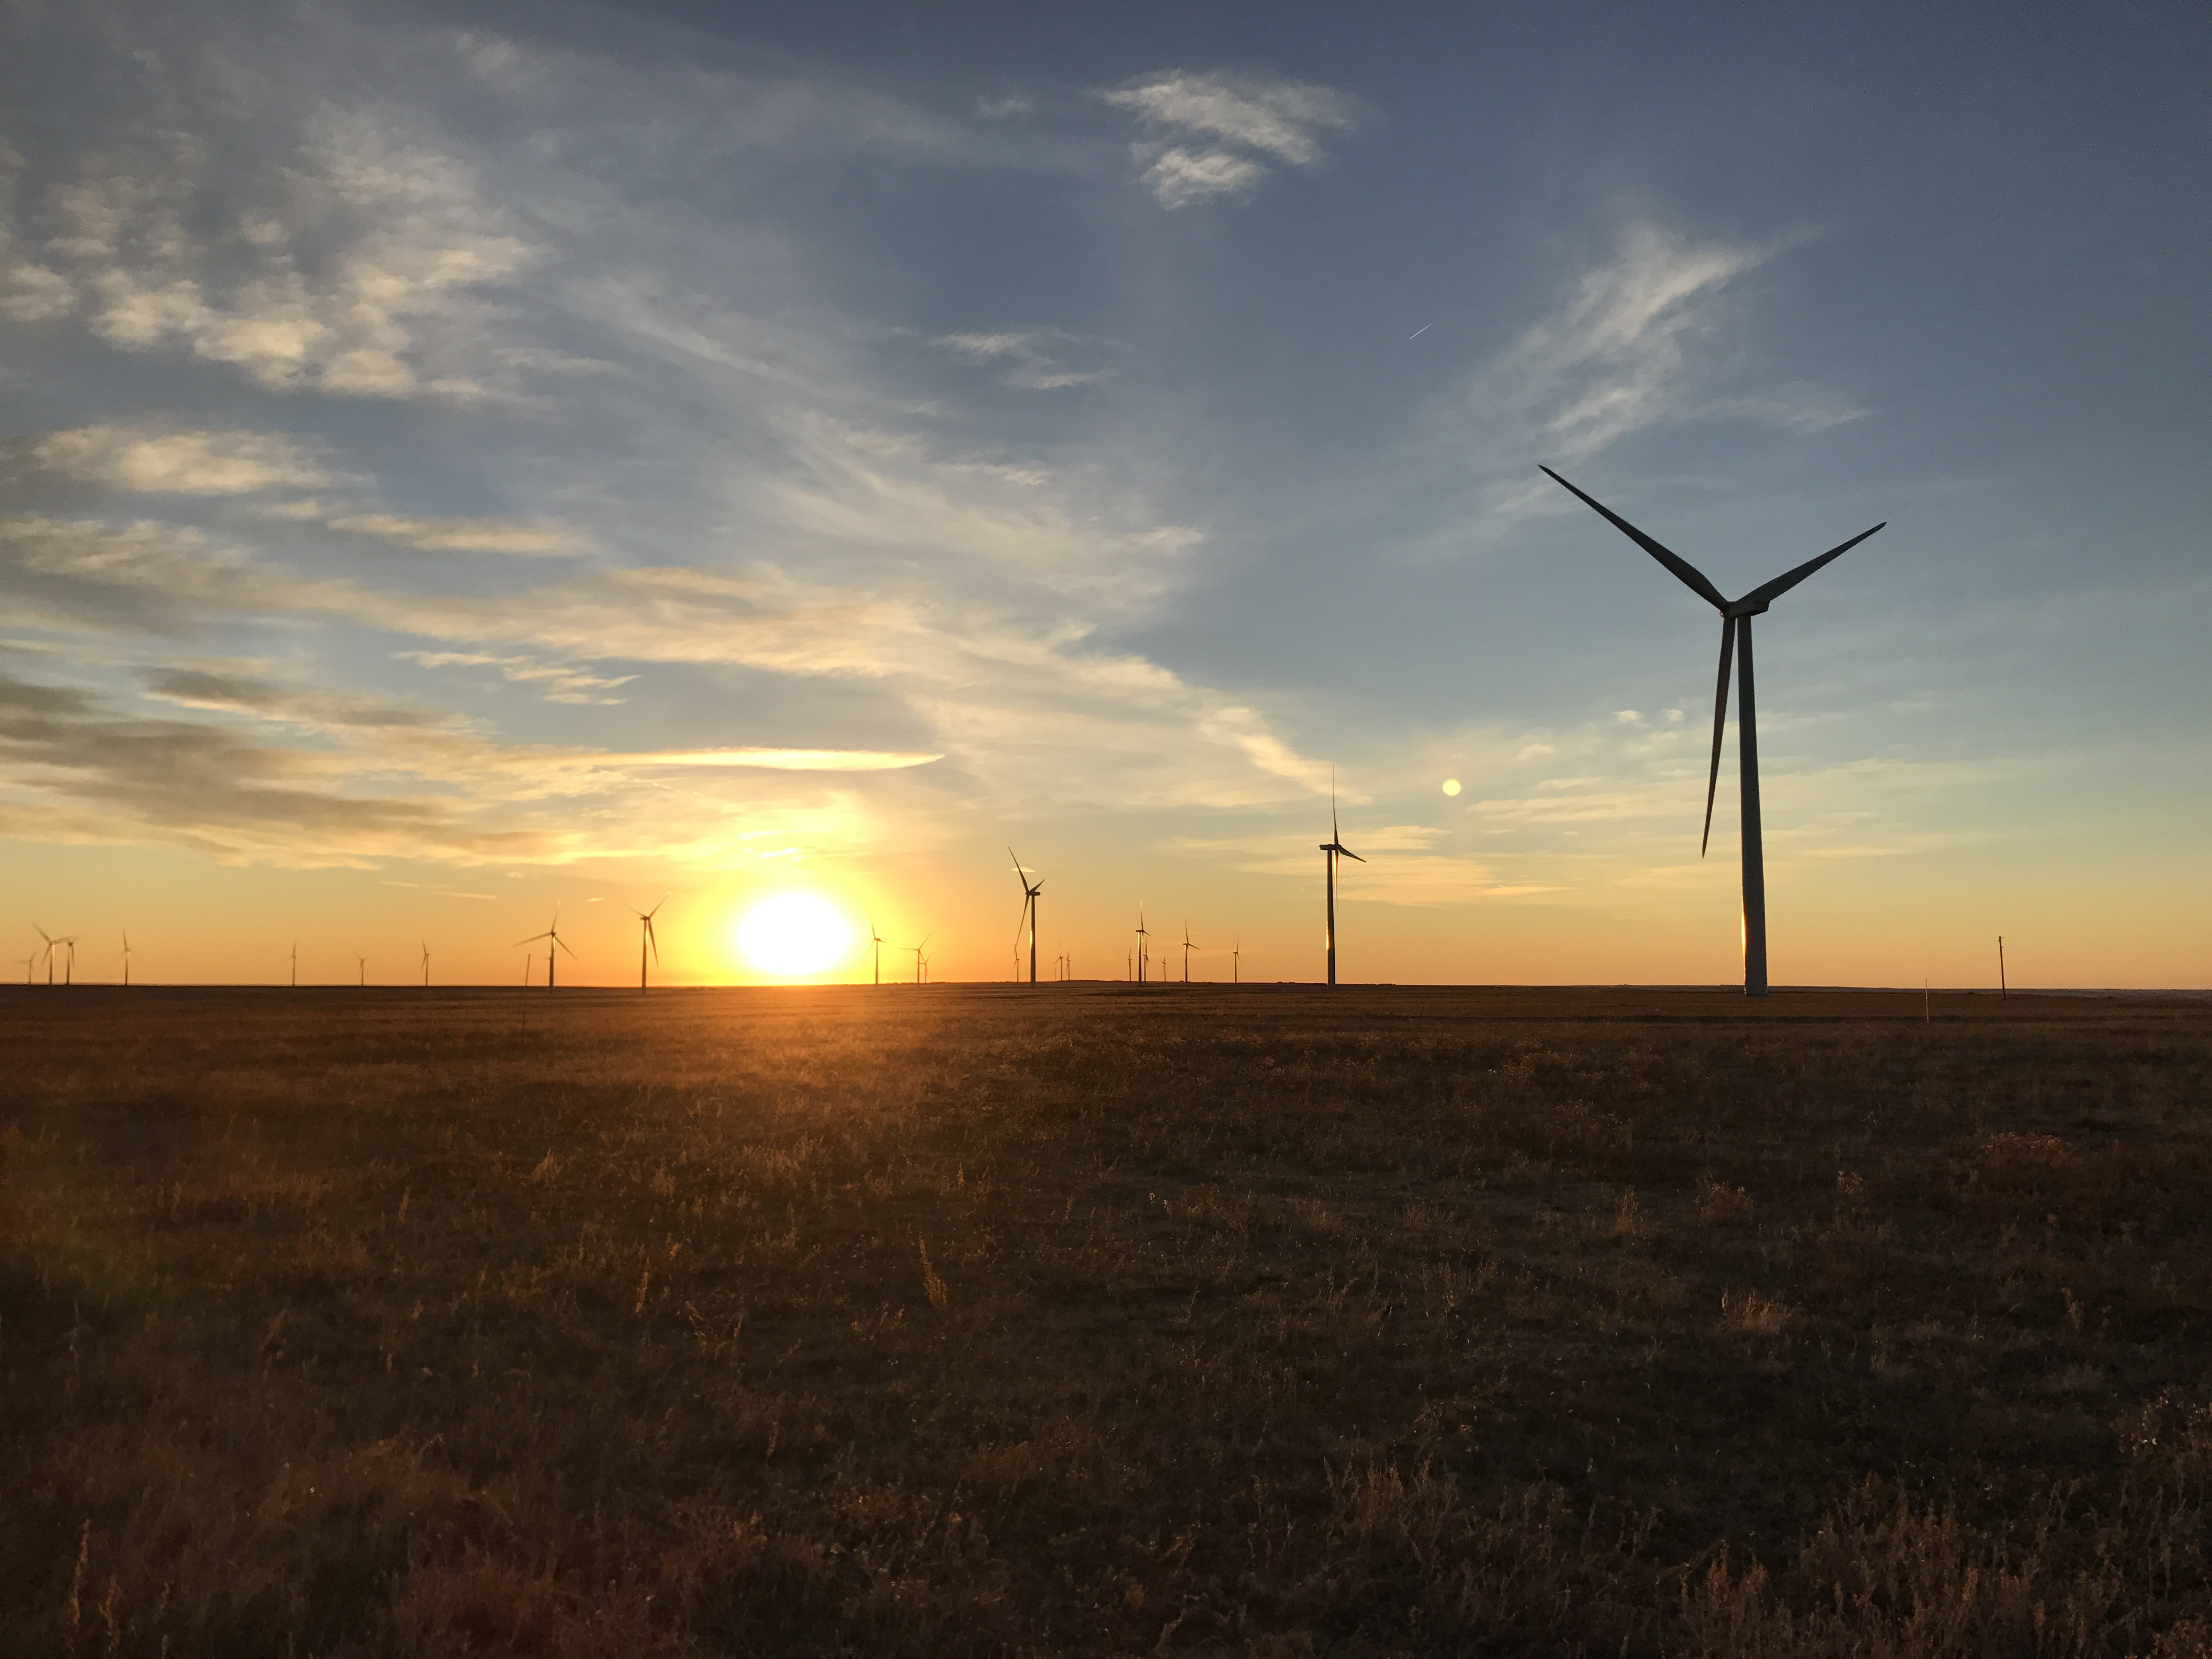 PSDcast - Preventing Catastrophic Damage to Wind Turbines